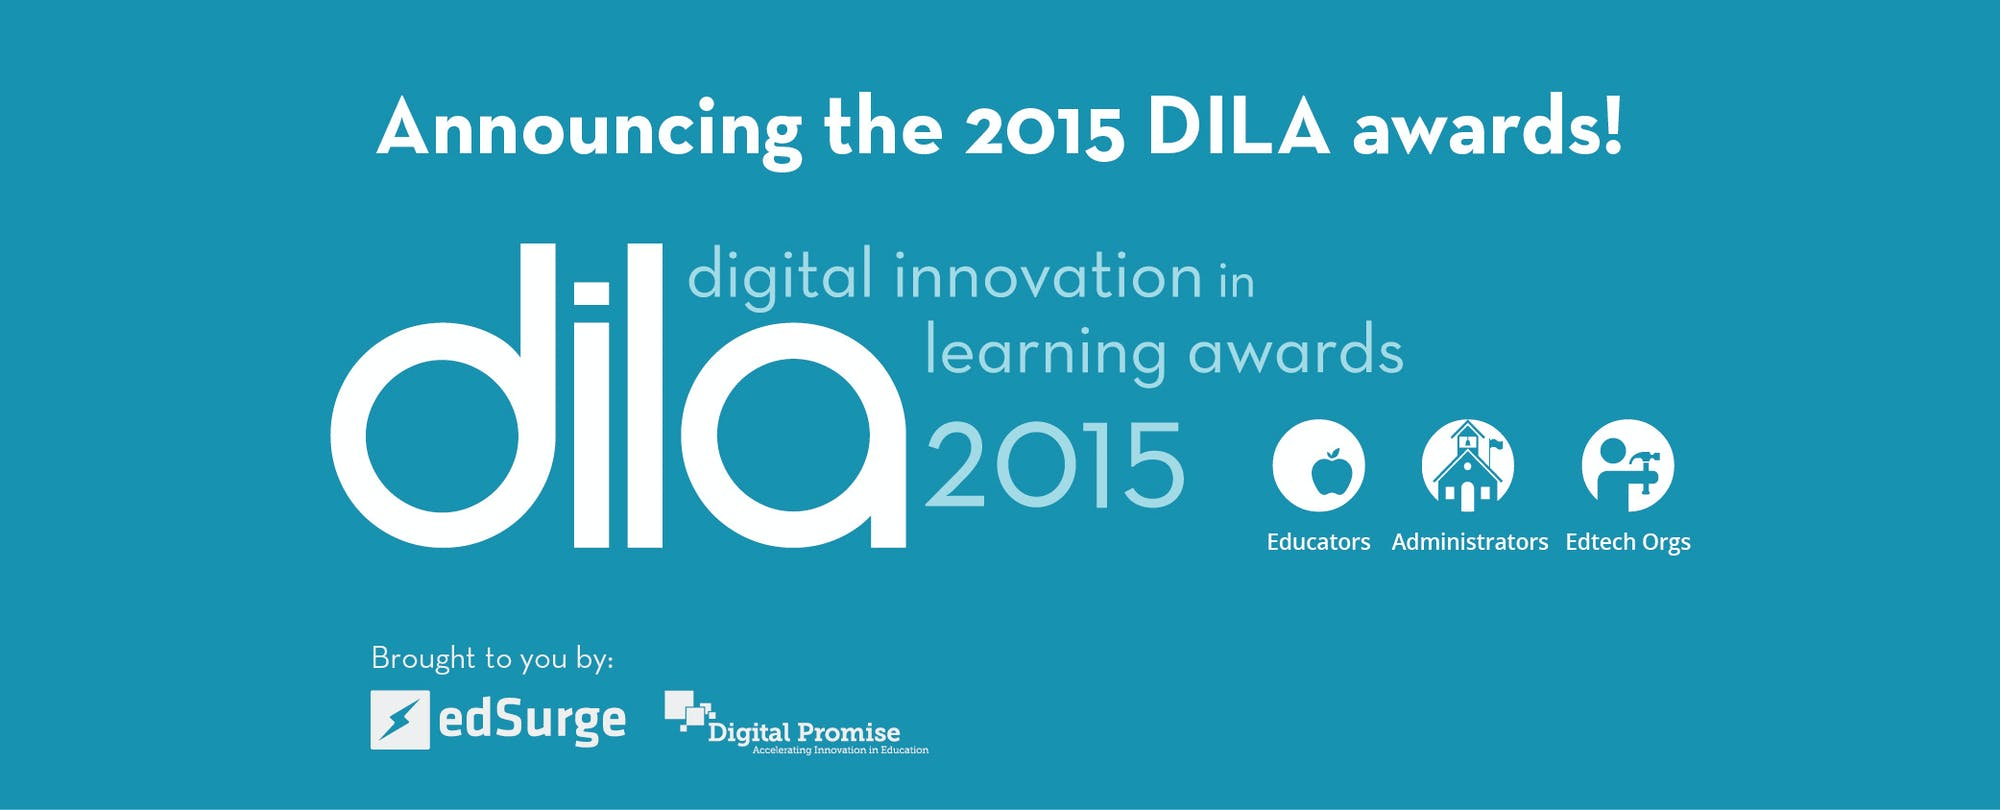 Announcing the Second Annual Digital Innovation in Learning Awards